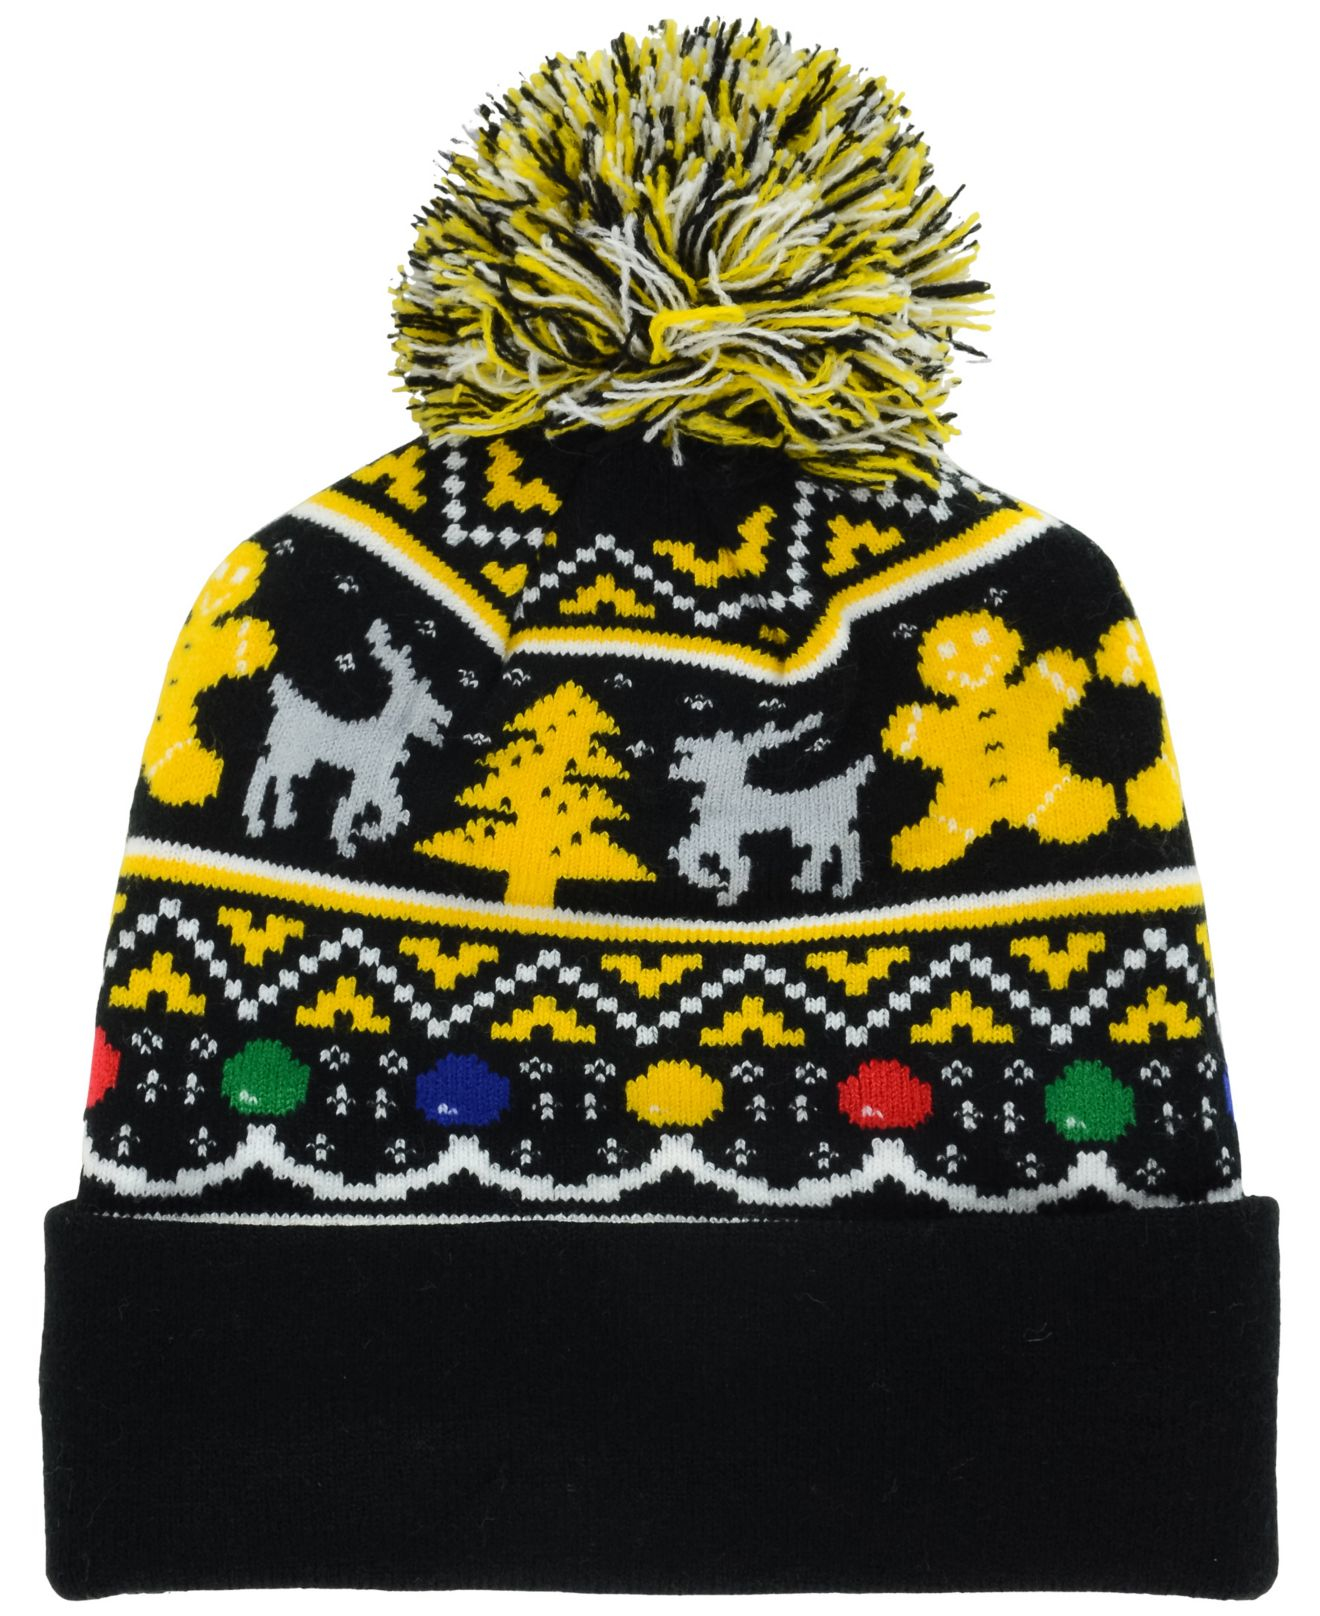 Lyst - KTZ Pittsburgh Steelers Christmas Sweater Pom Knit Hat for Men 4fabef0b6